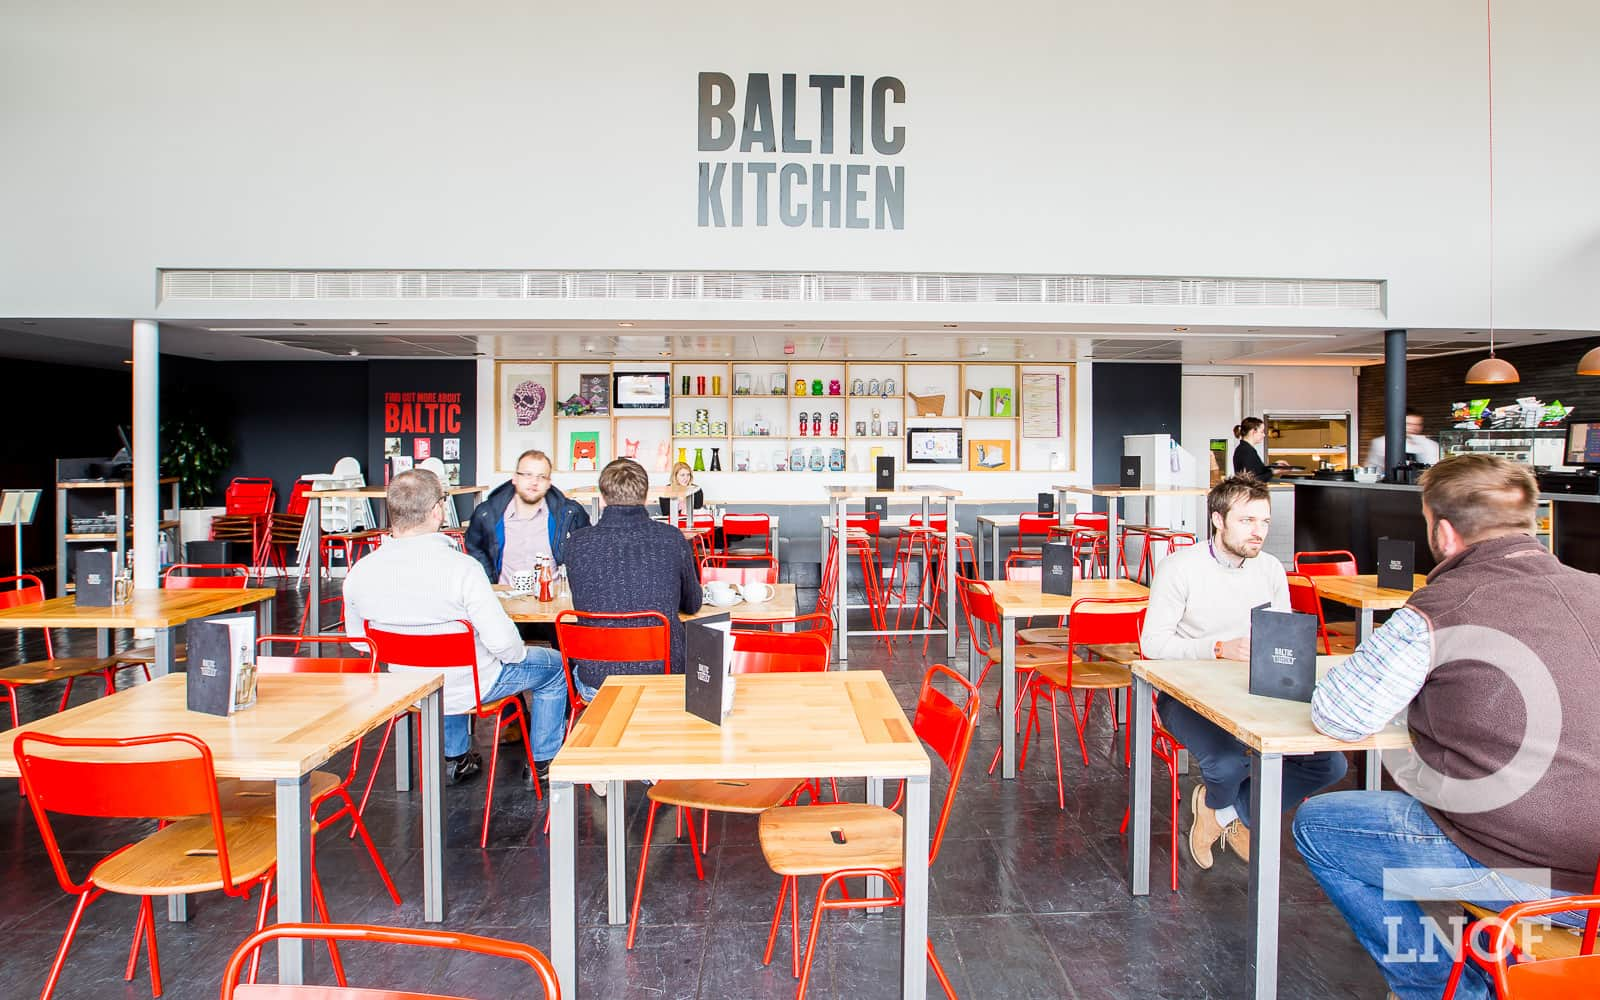 Last Night of Freedom staff at Baltic Kitchen in Newcastle Gateshead